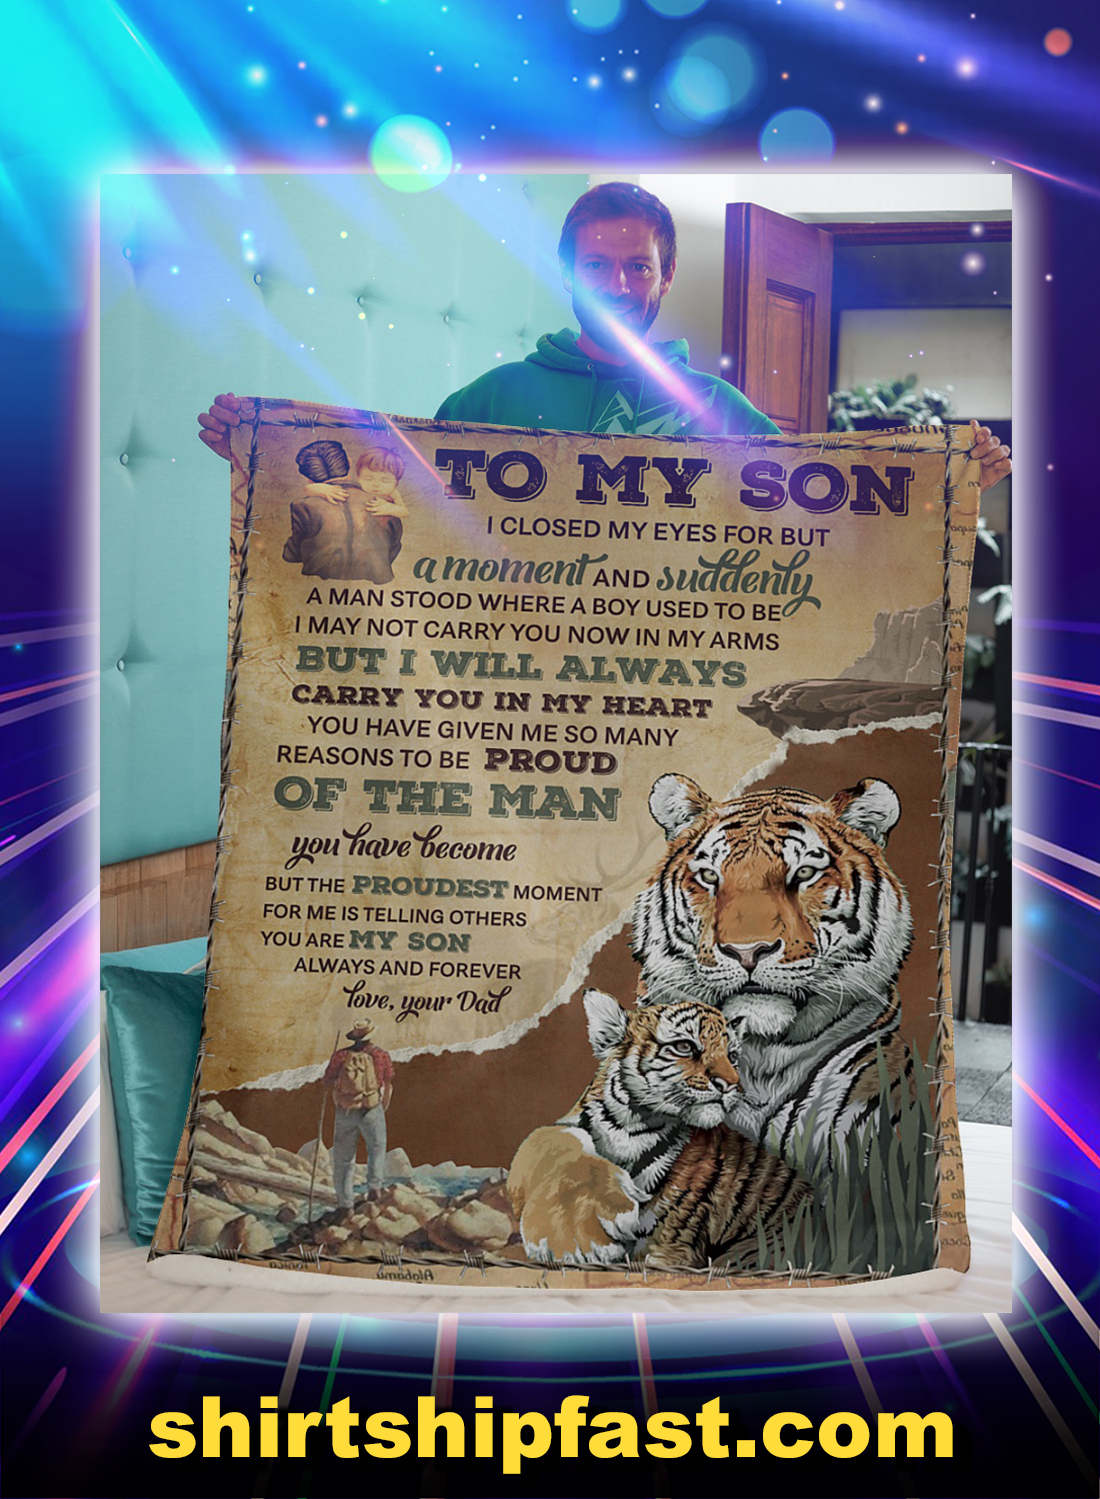 Tiger to my son love your dad blanket